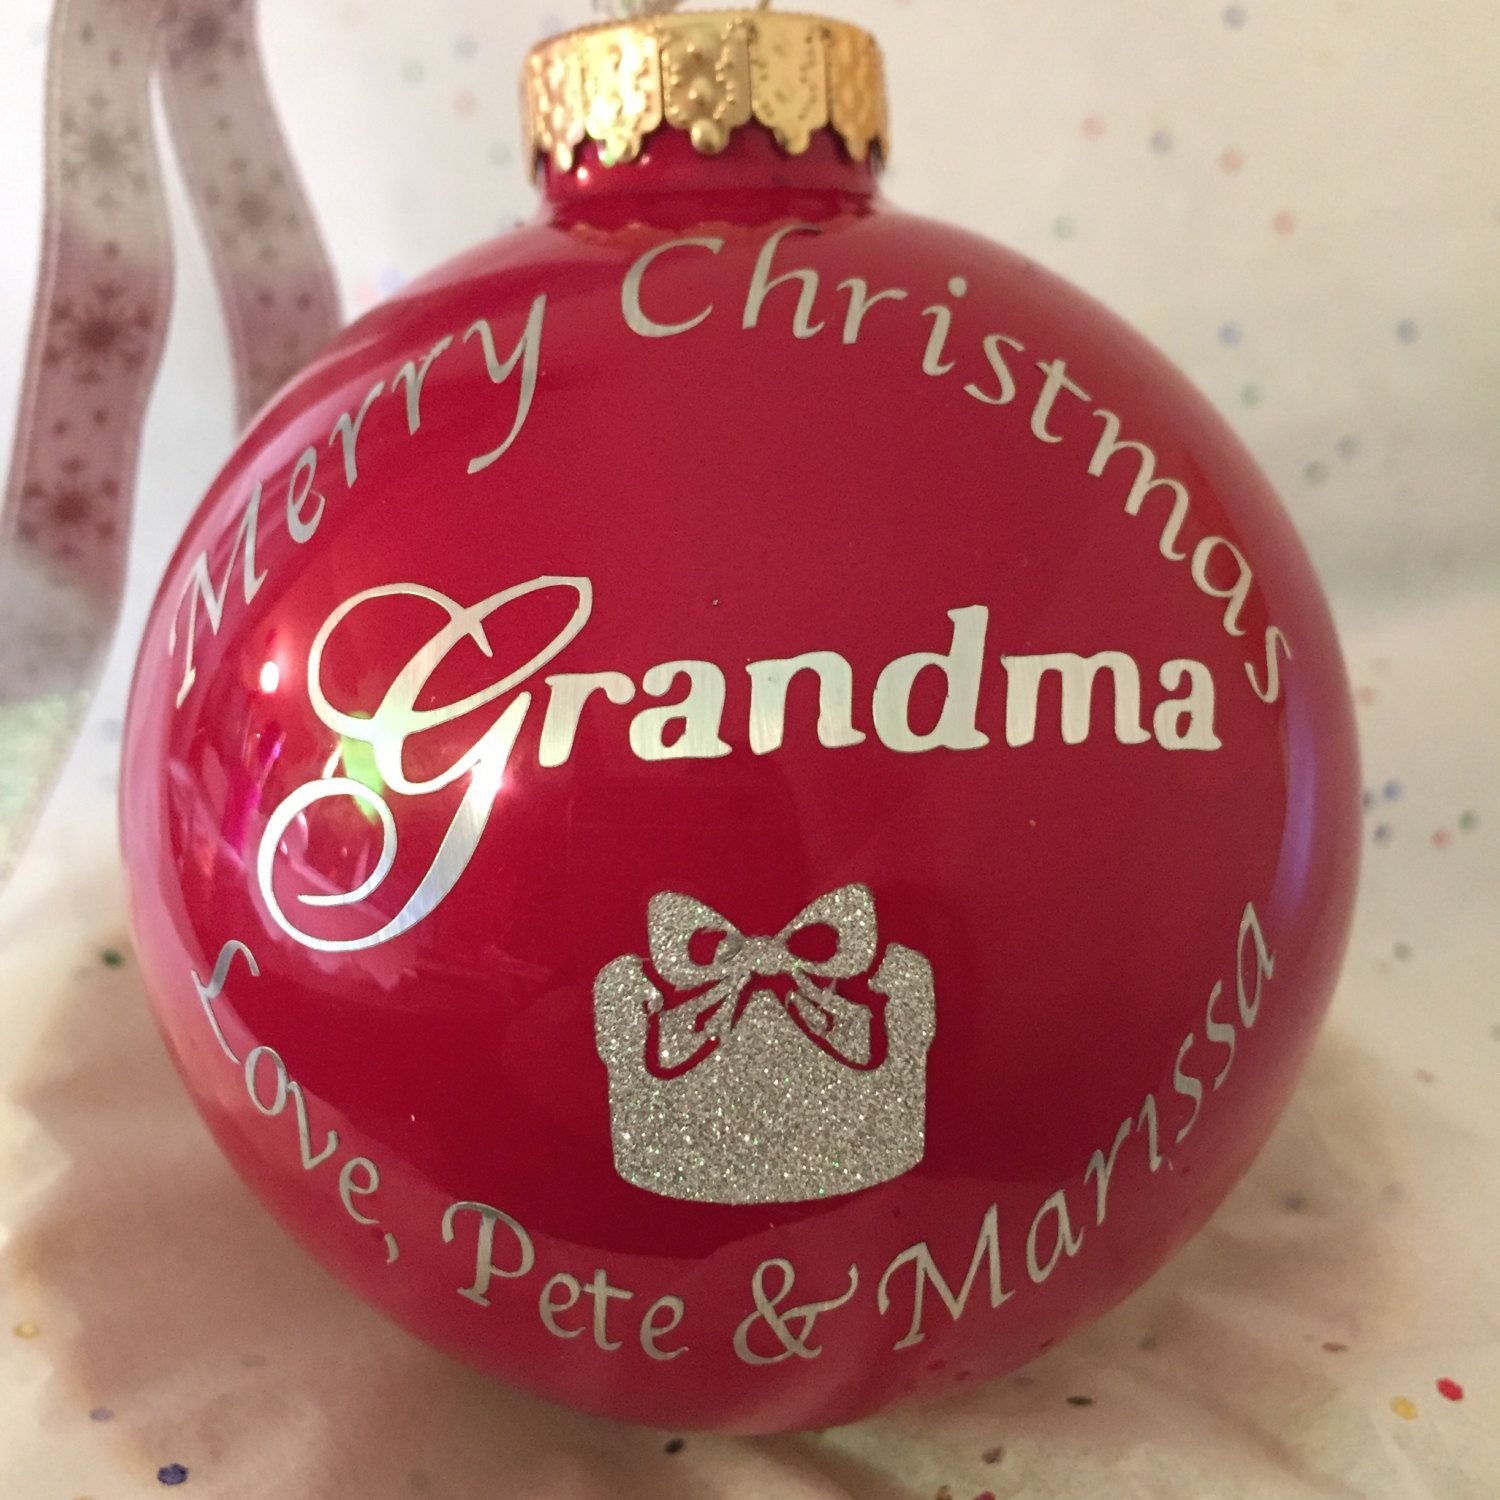 Merry Christmas Grandma, etc. personalized Red glass ornament by ...